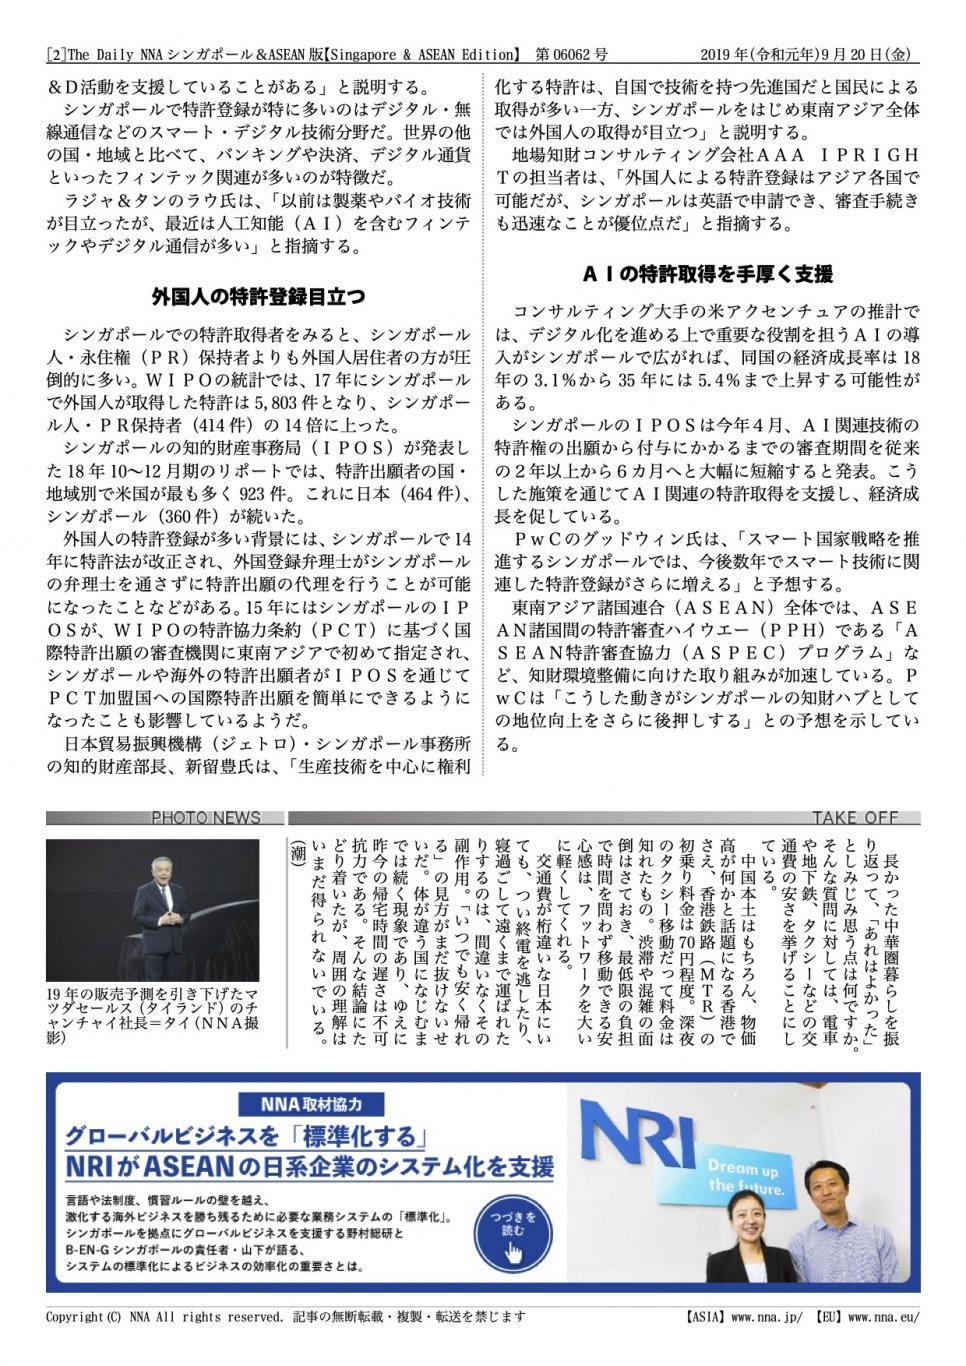 AAA Interview in 'The Daily NNA' in Singapore and Asia_IP in Singapore